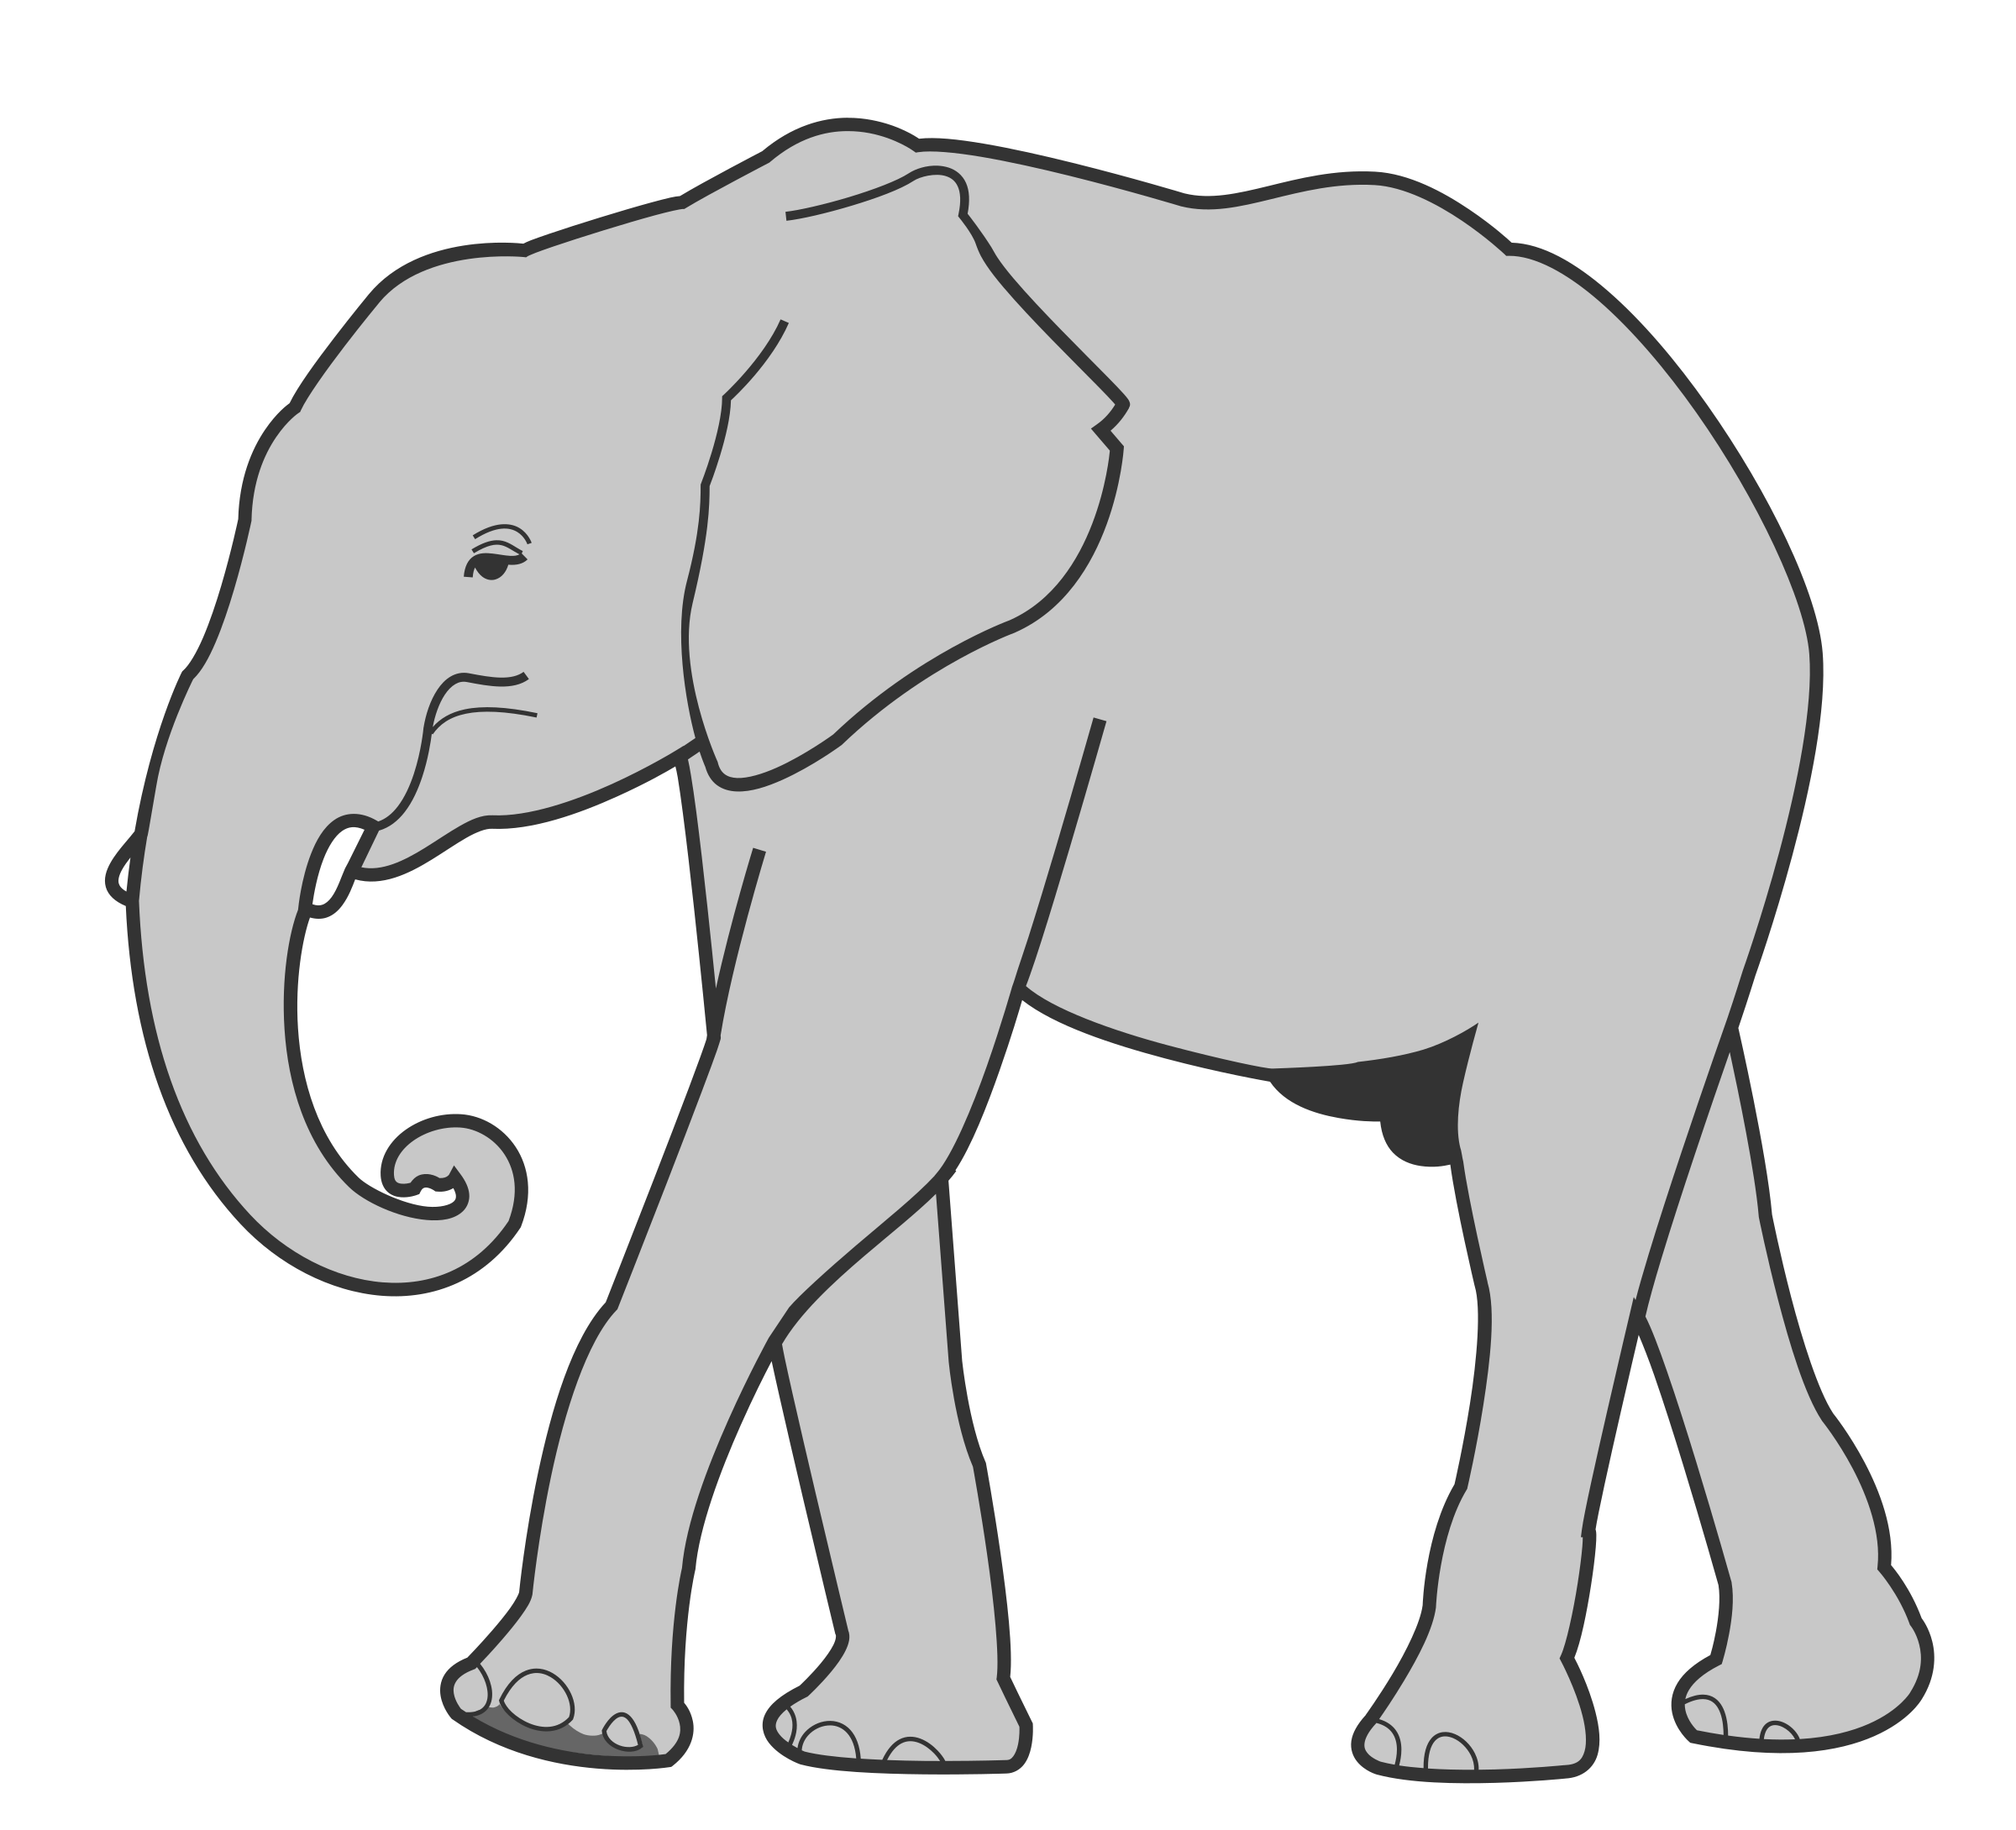 Grassland elephant clipart black and white transparent stock Elephant,Elephants and Mammoths,Indian elephant,Mammal,Vertebrate ... transparent stock